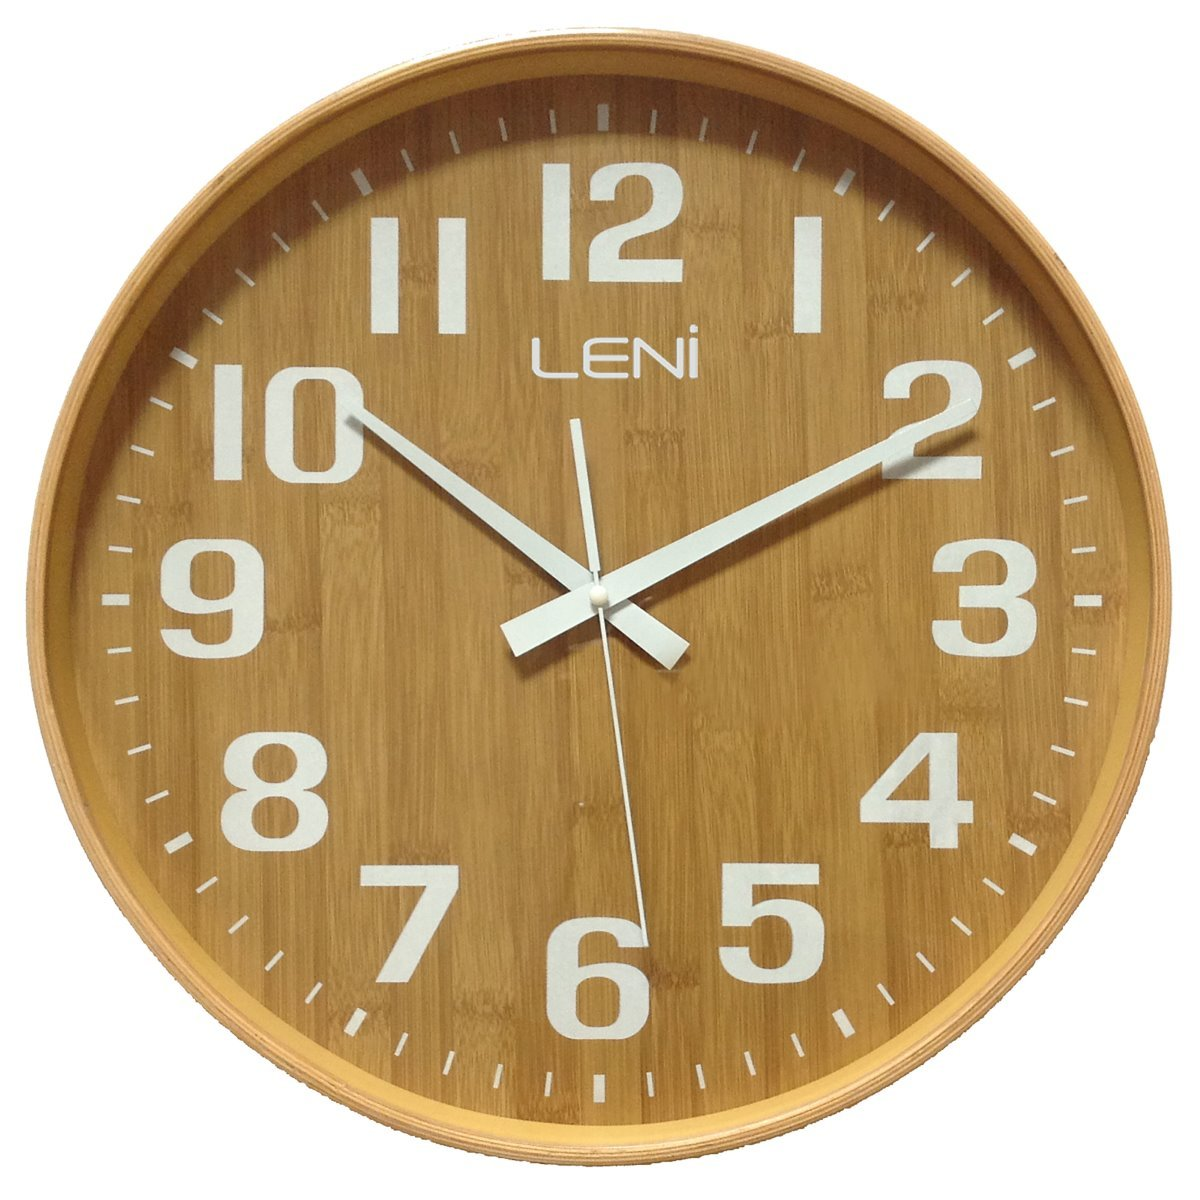 Leni Wood Wall Clock, Bamboo, Large, 40cm